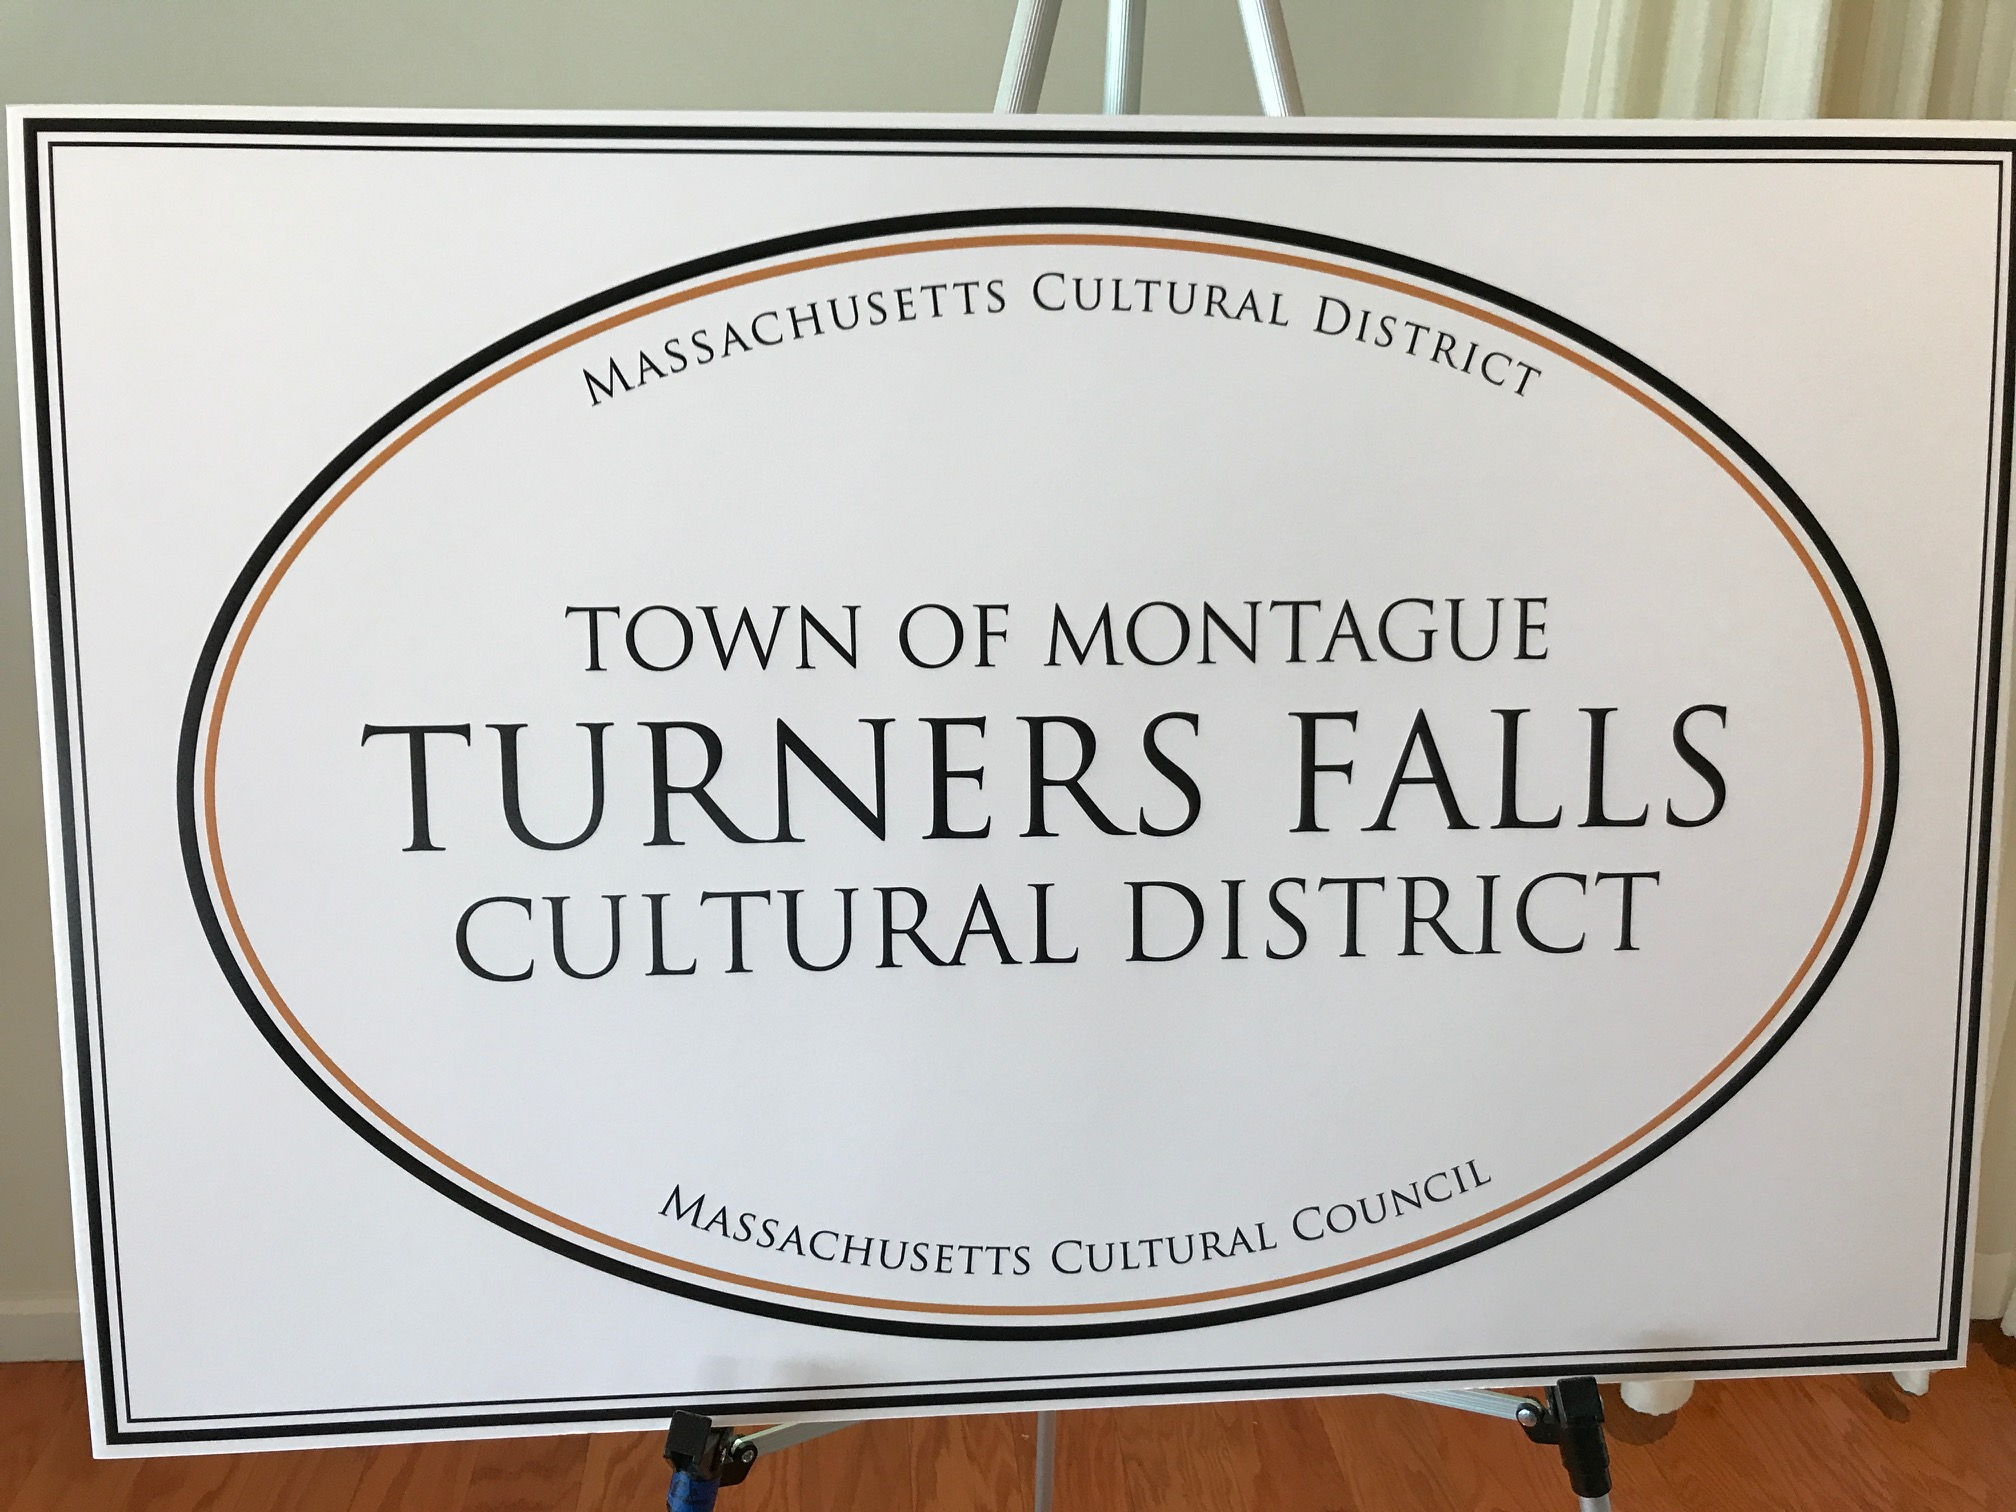 Image of the Turners Falls Cultural District Award